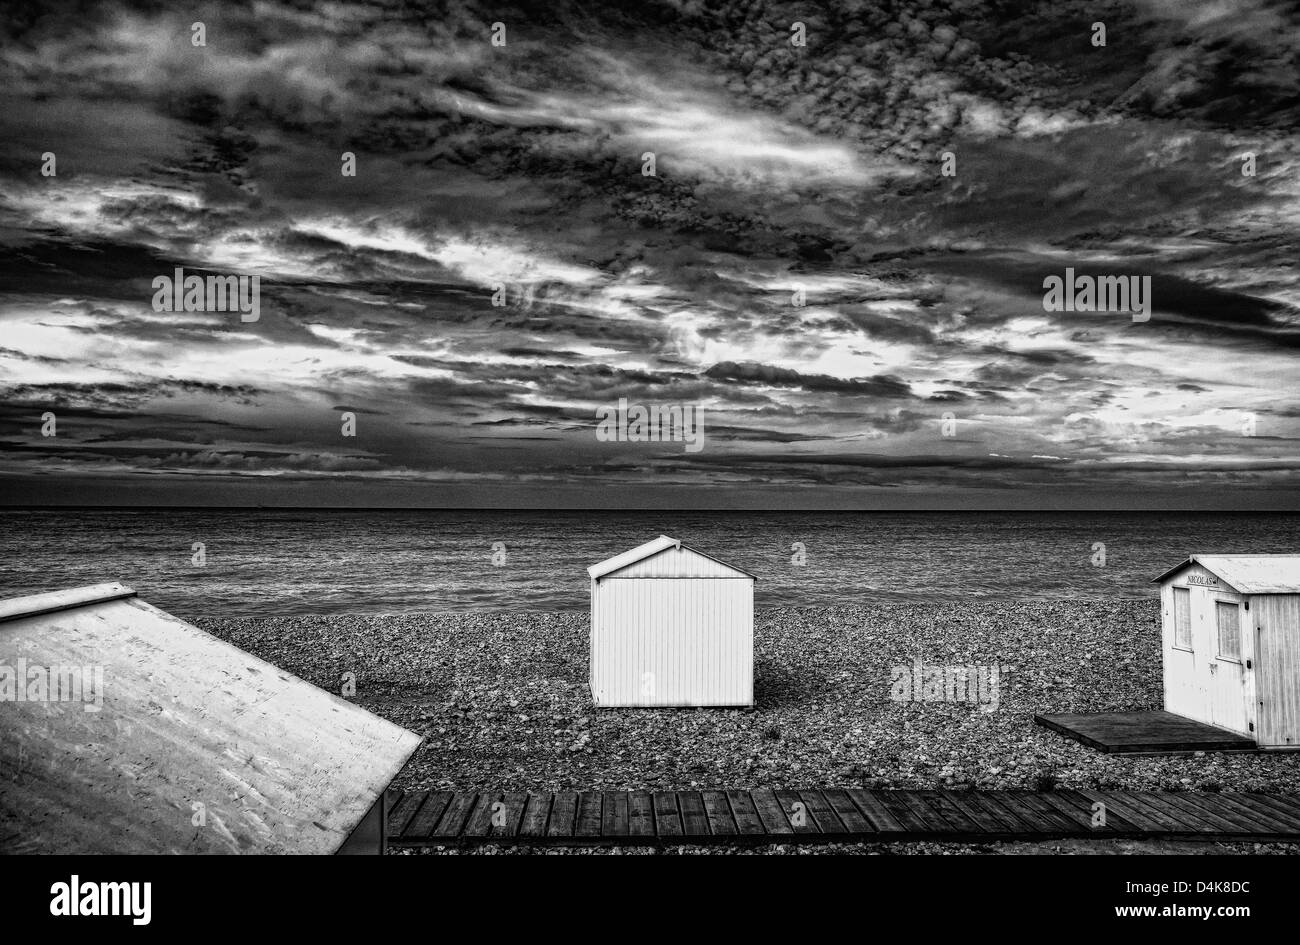 Huts on rocky beach - Stock Image